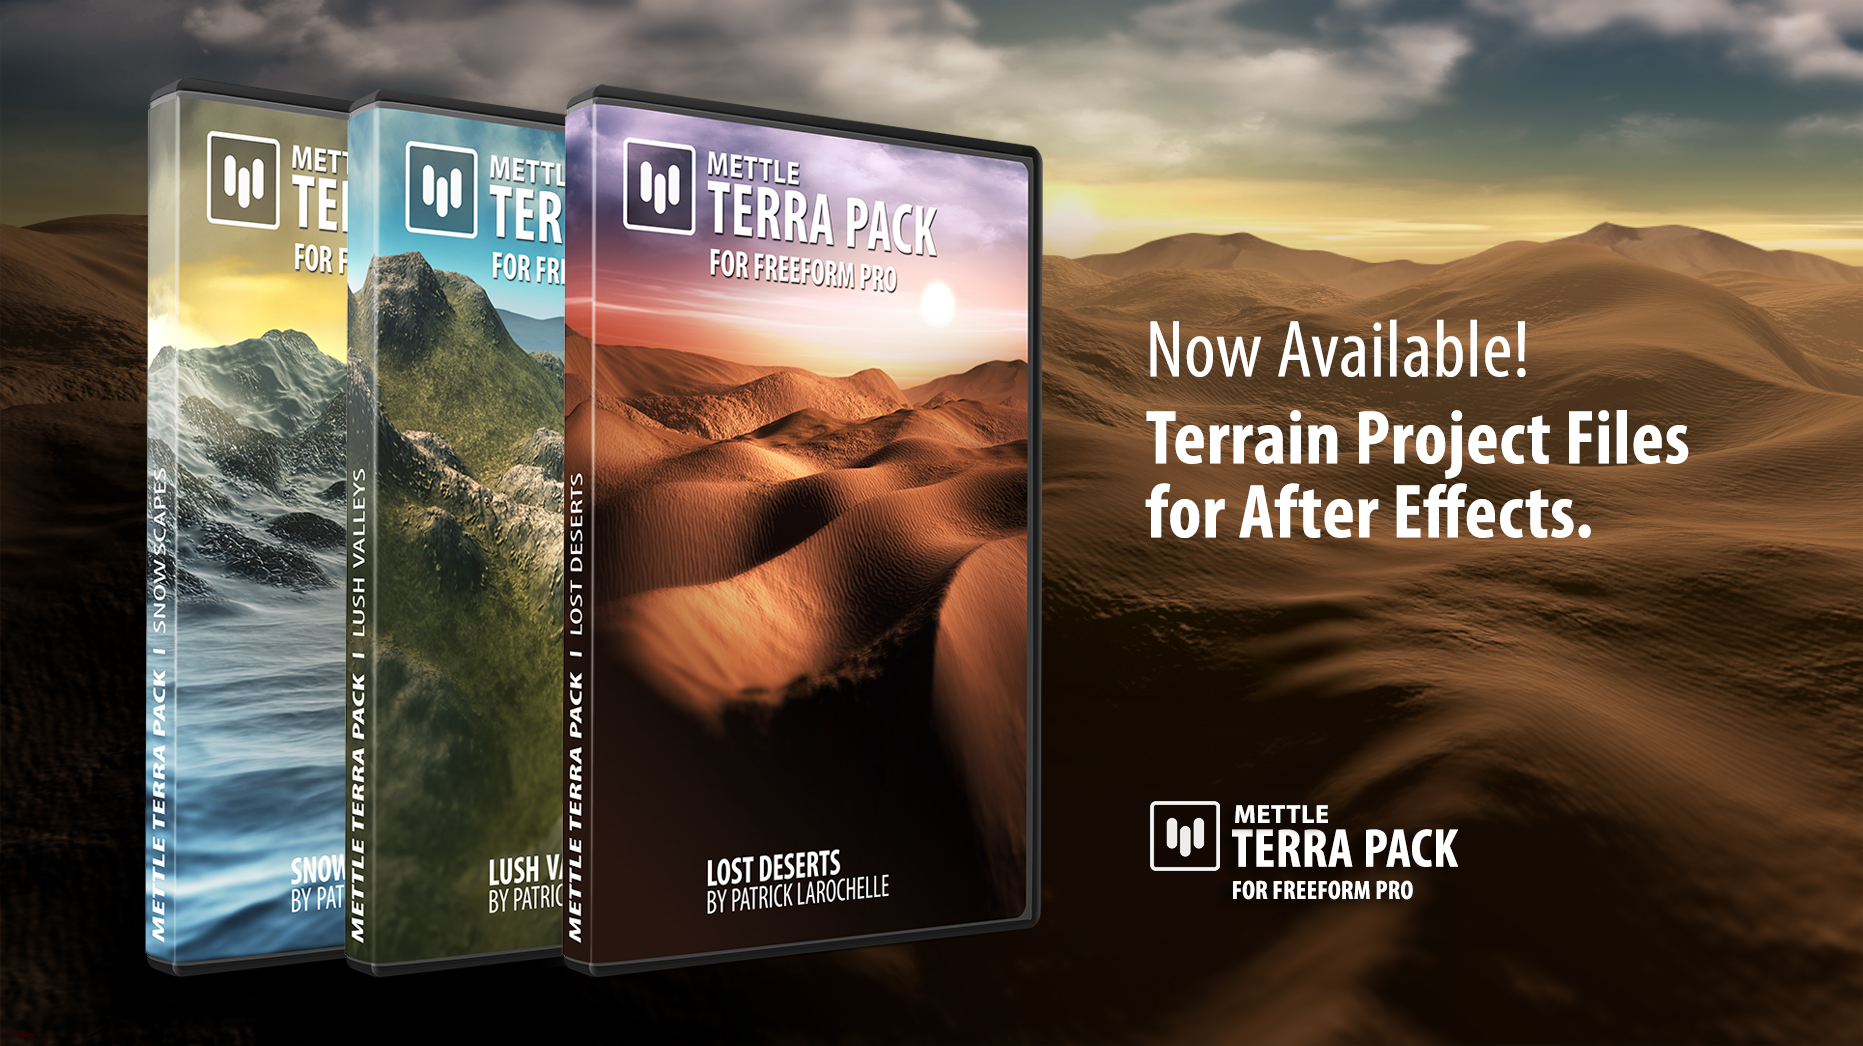 Now-Available-Terrain-Project-Files-by-Mettle